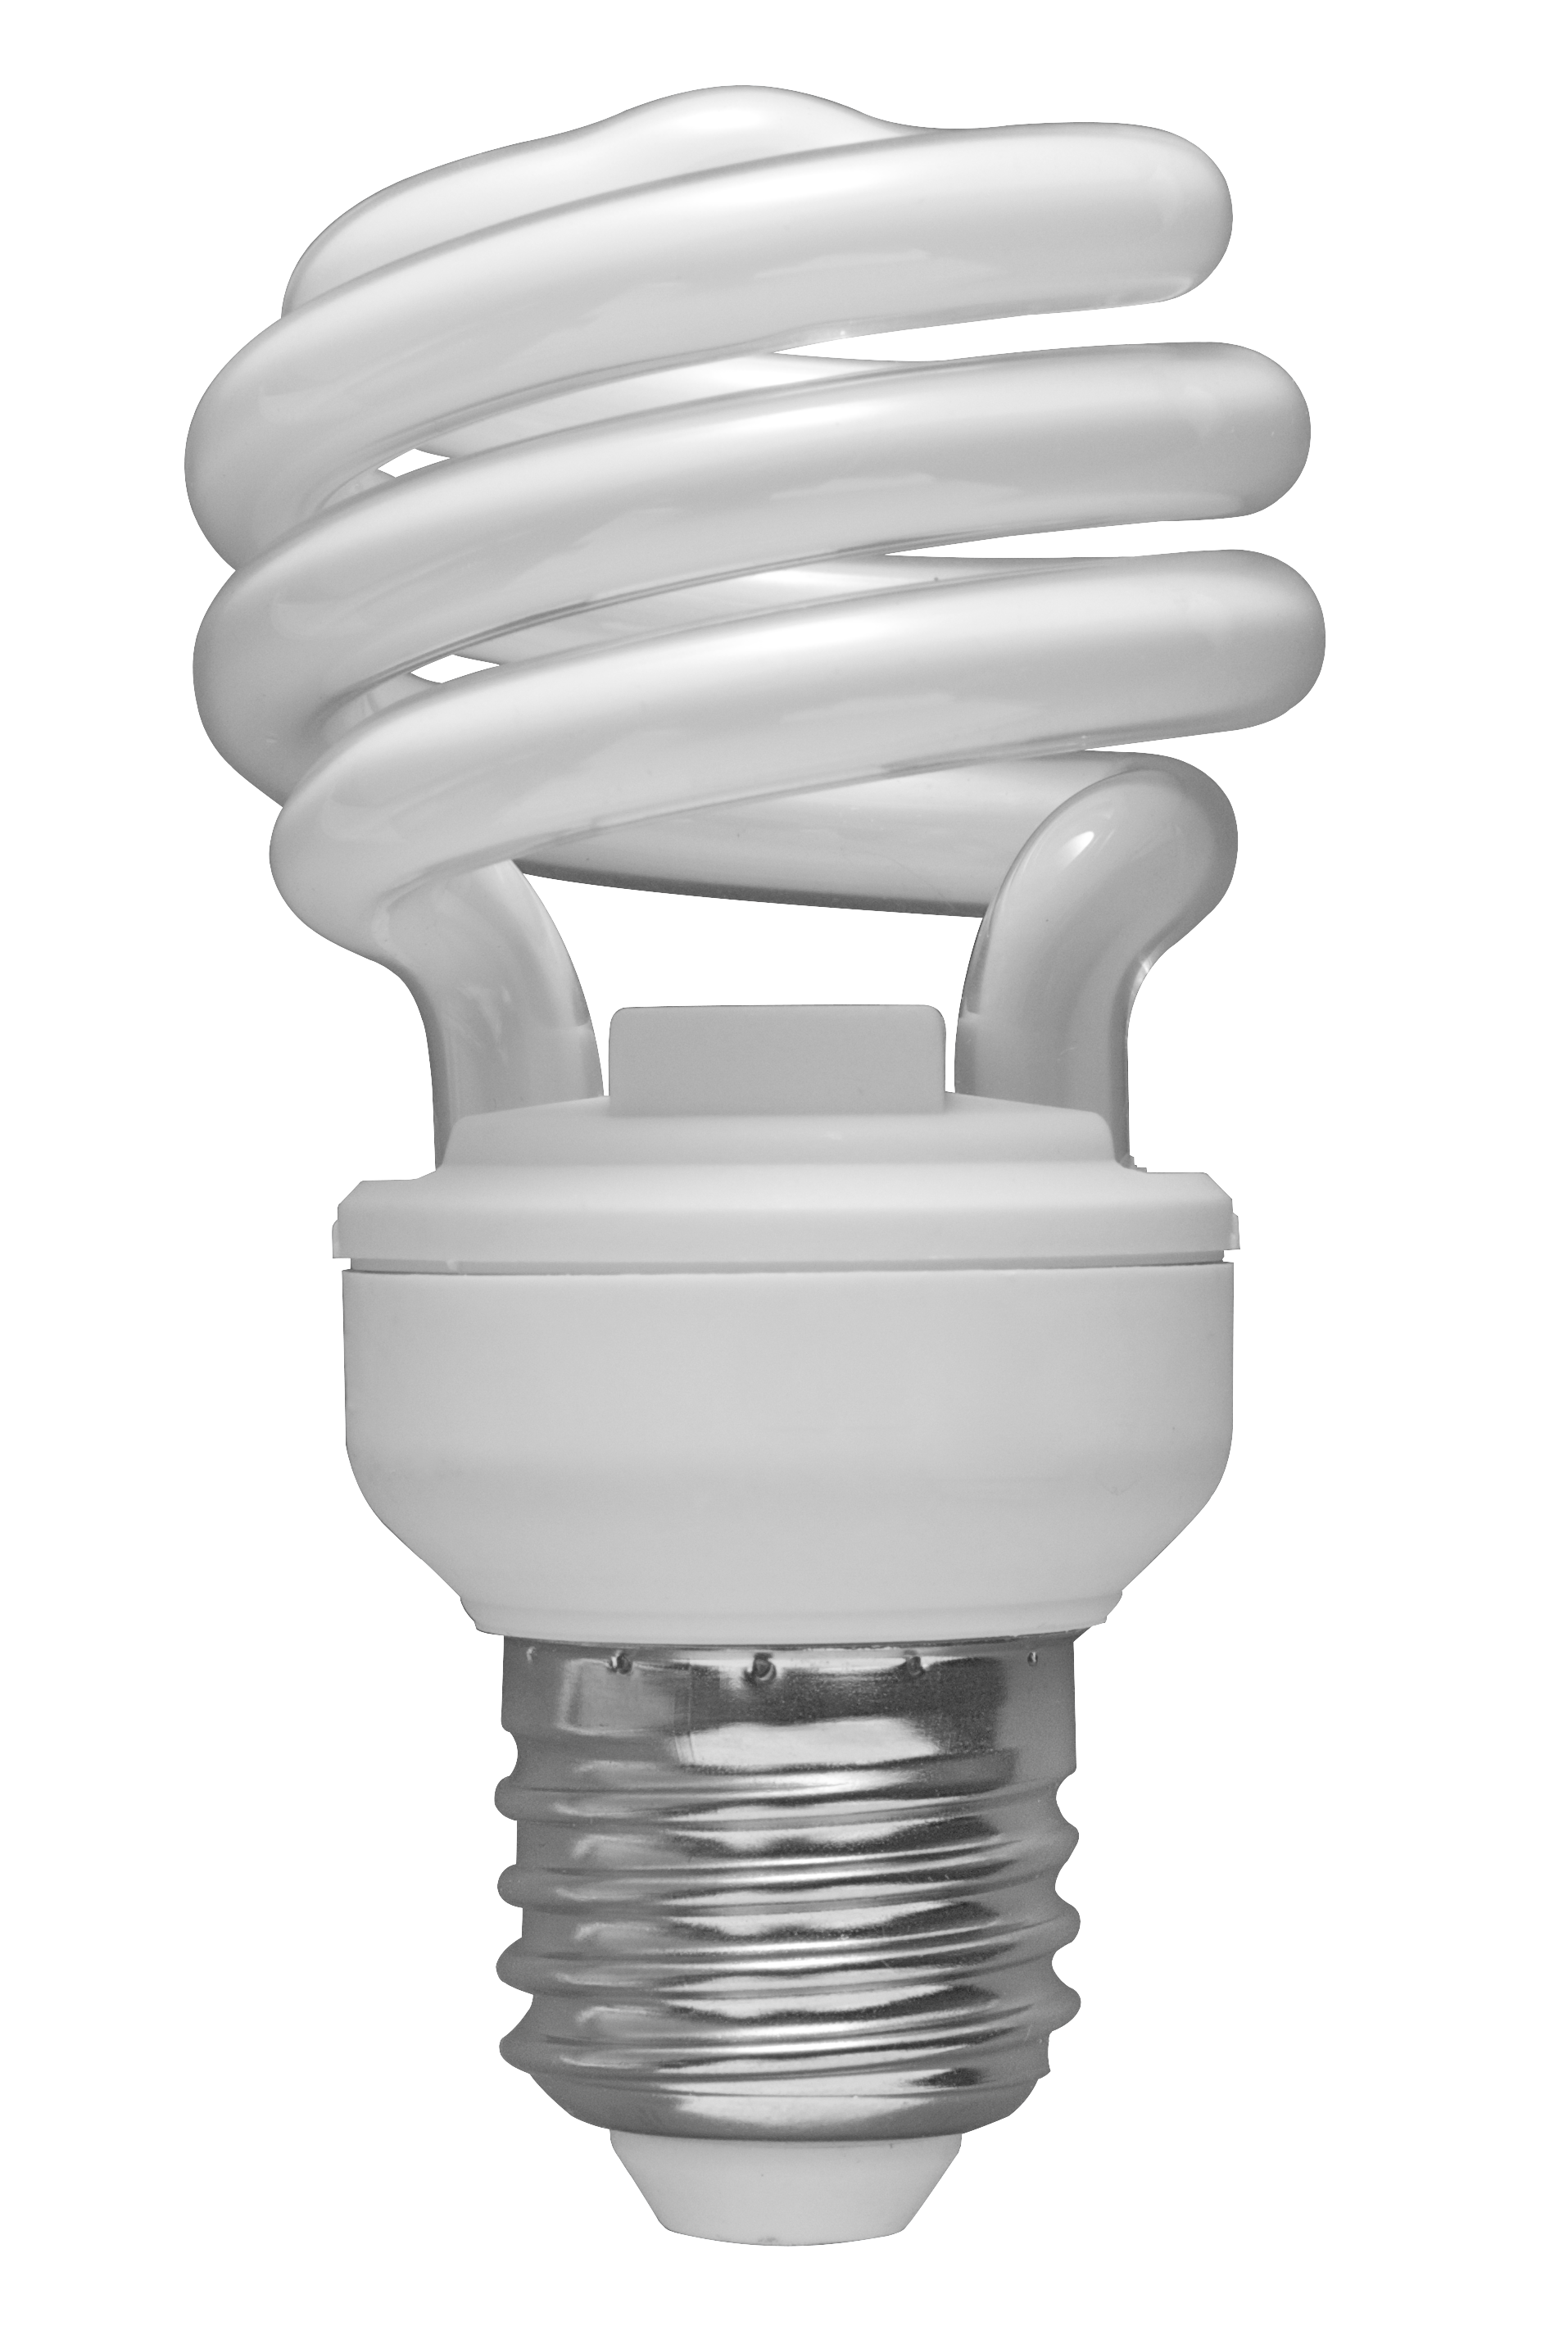 Description 01 Spiral CFL Bulb 2010 03 08 (transparent Back) image #847